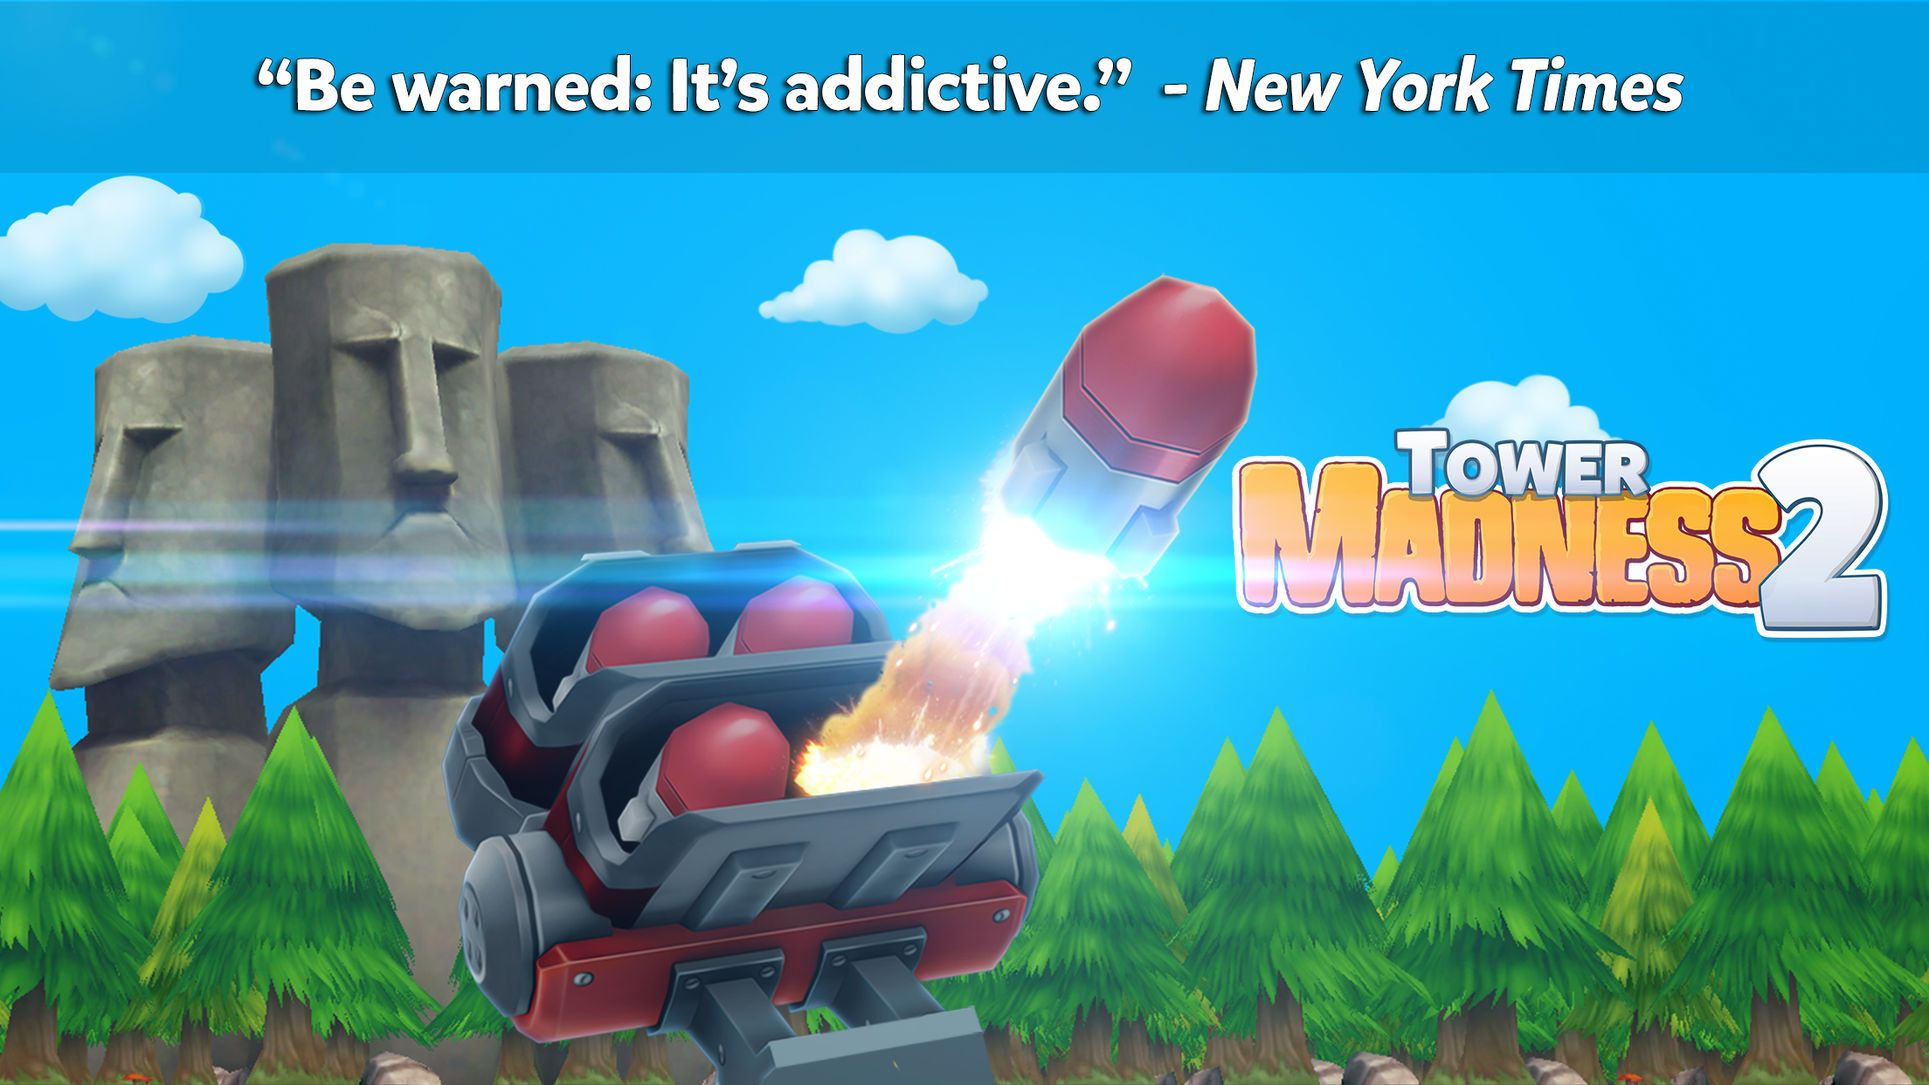 Tower Madness 2 Ipad apps, Free iphone, Iphone